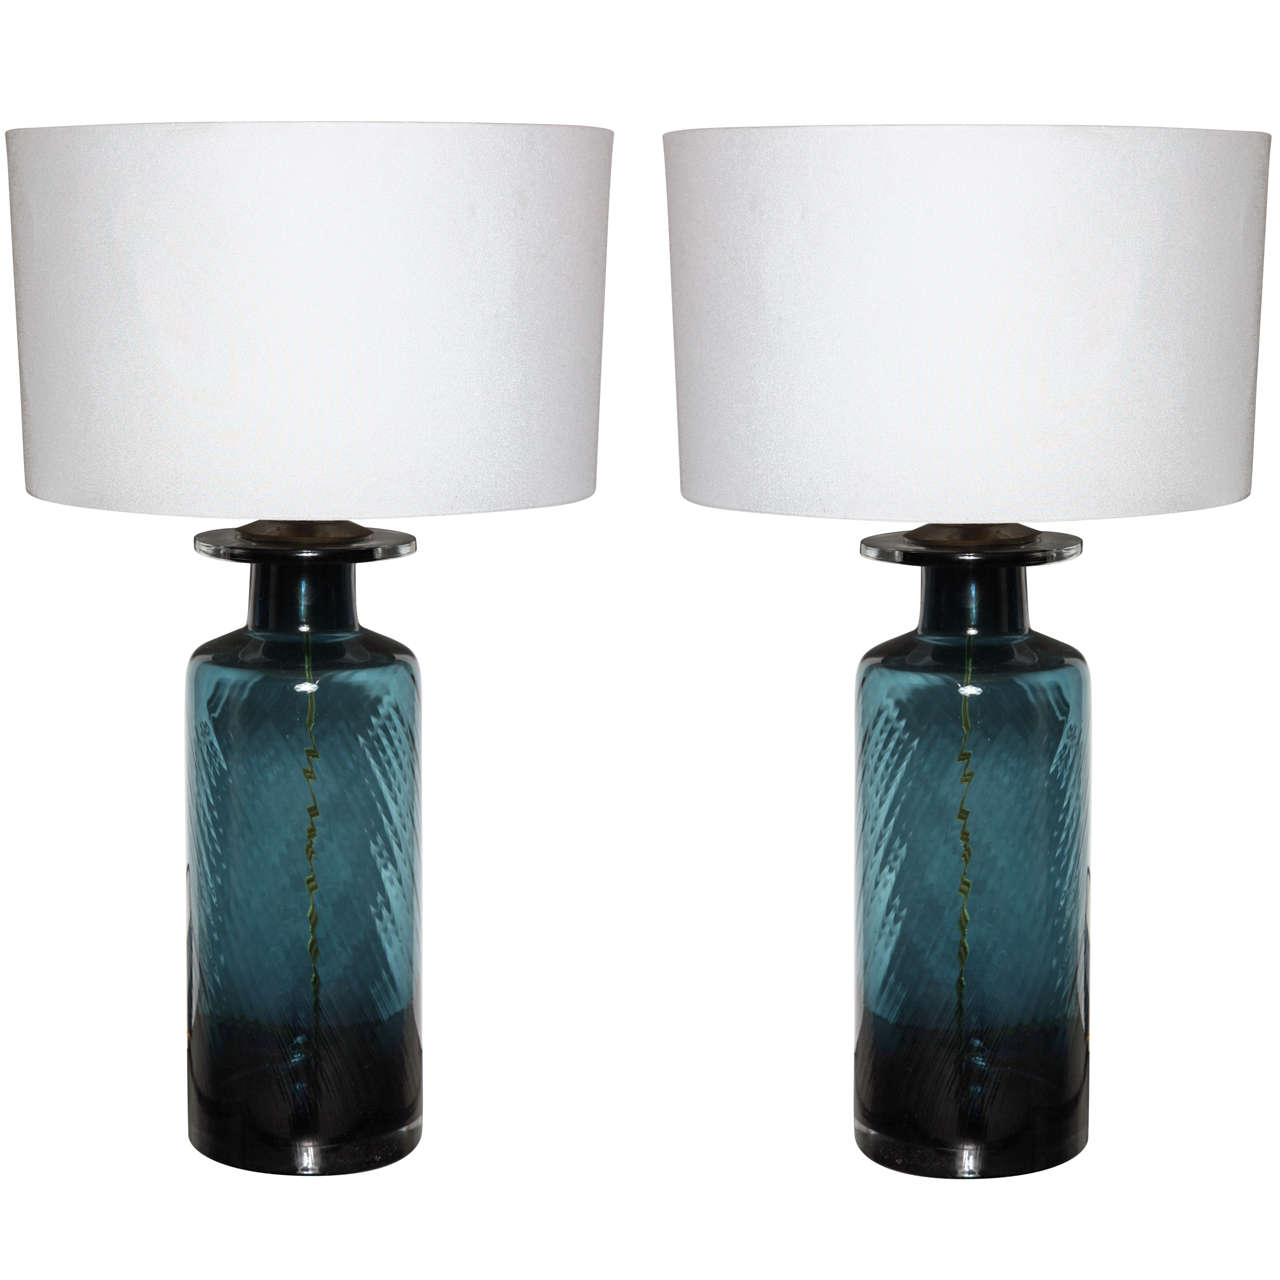 Pair Of Teal Blue Murano Glass Table Lamps At 1stdibs